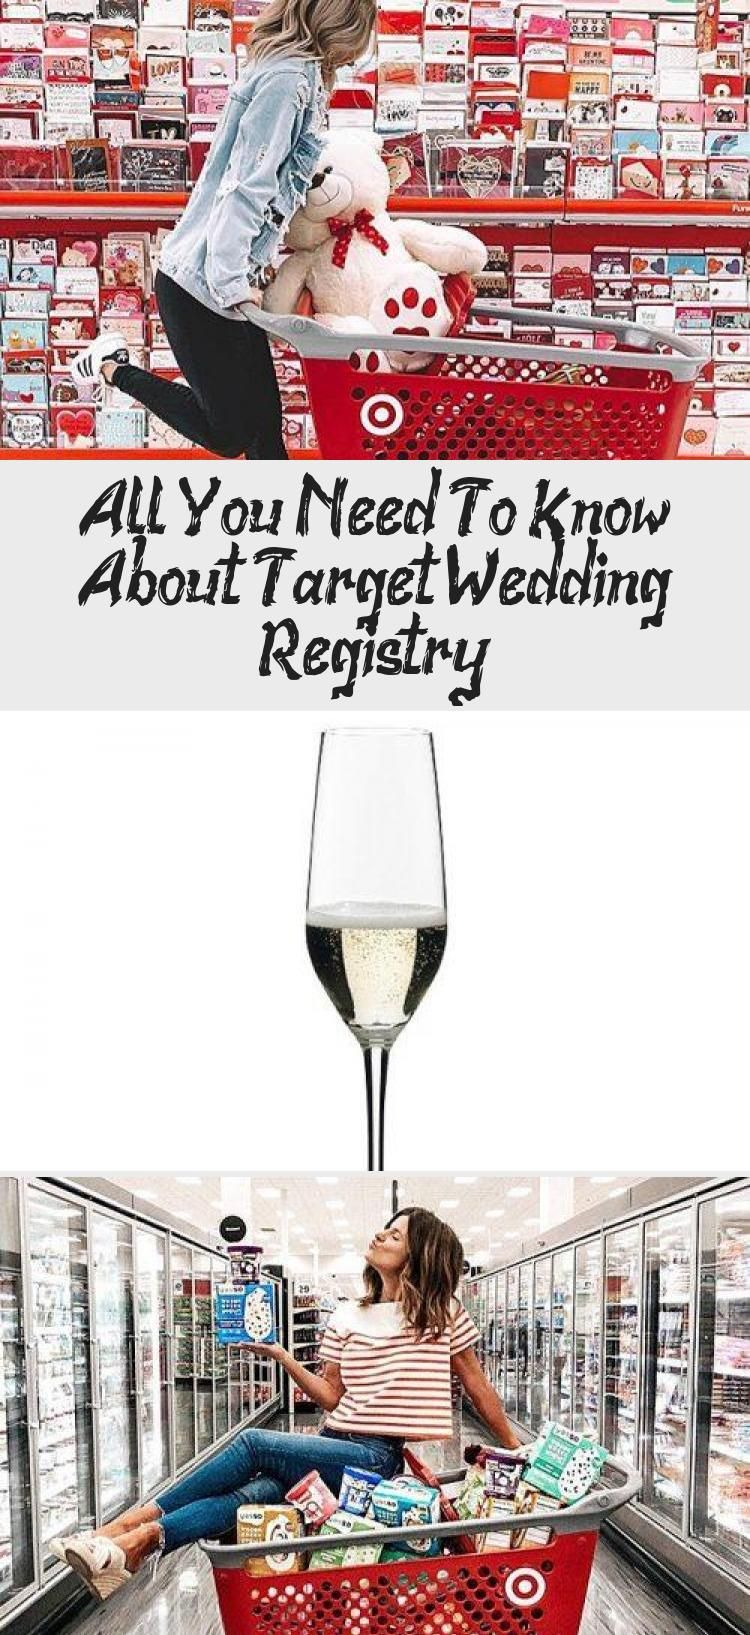 All You Need To Know About Target Wedding Registry